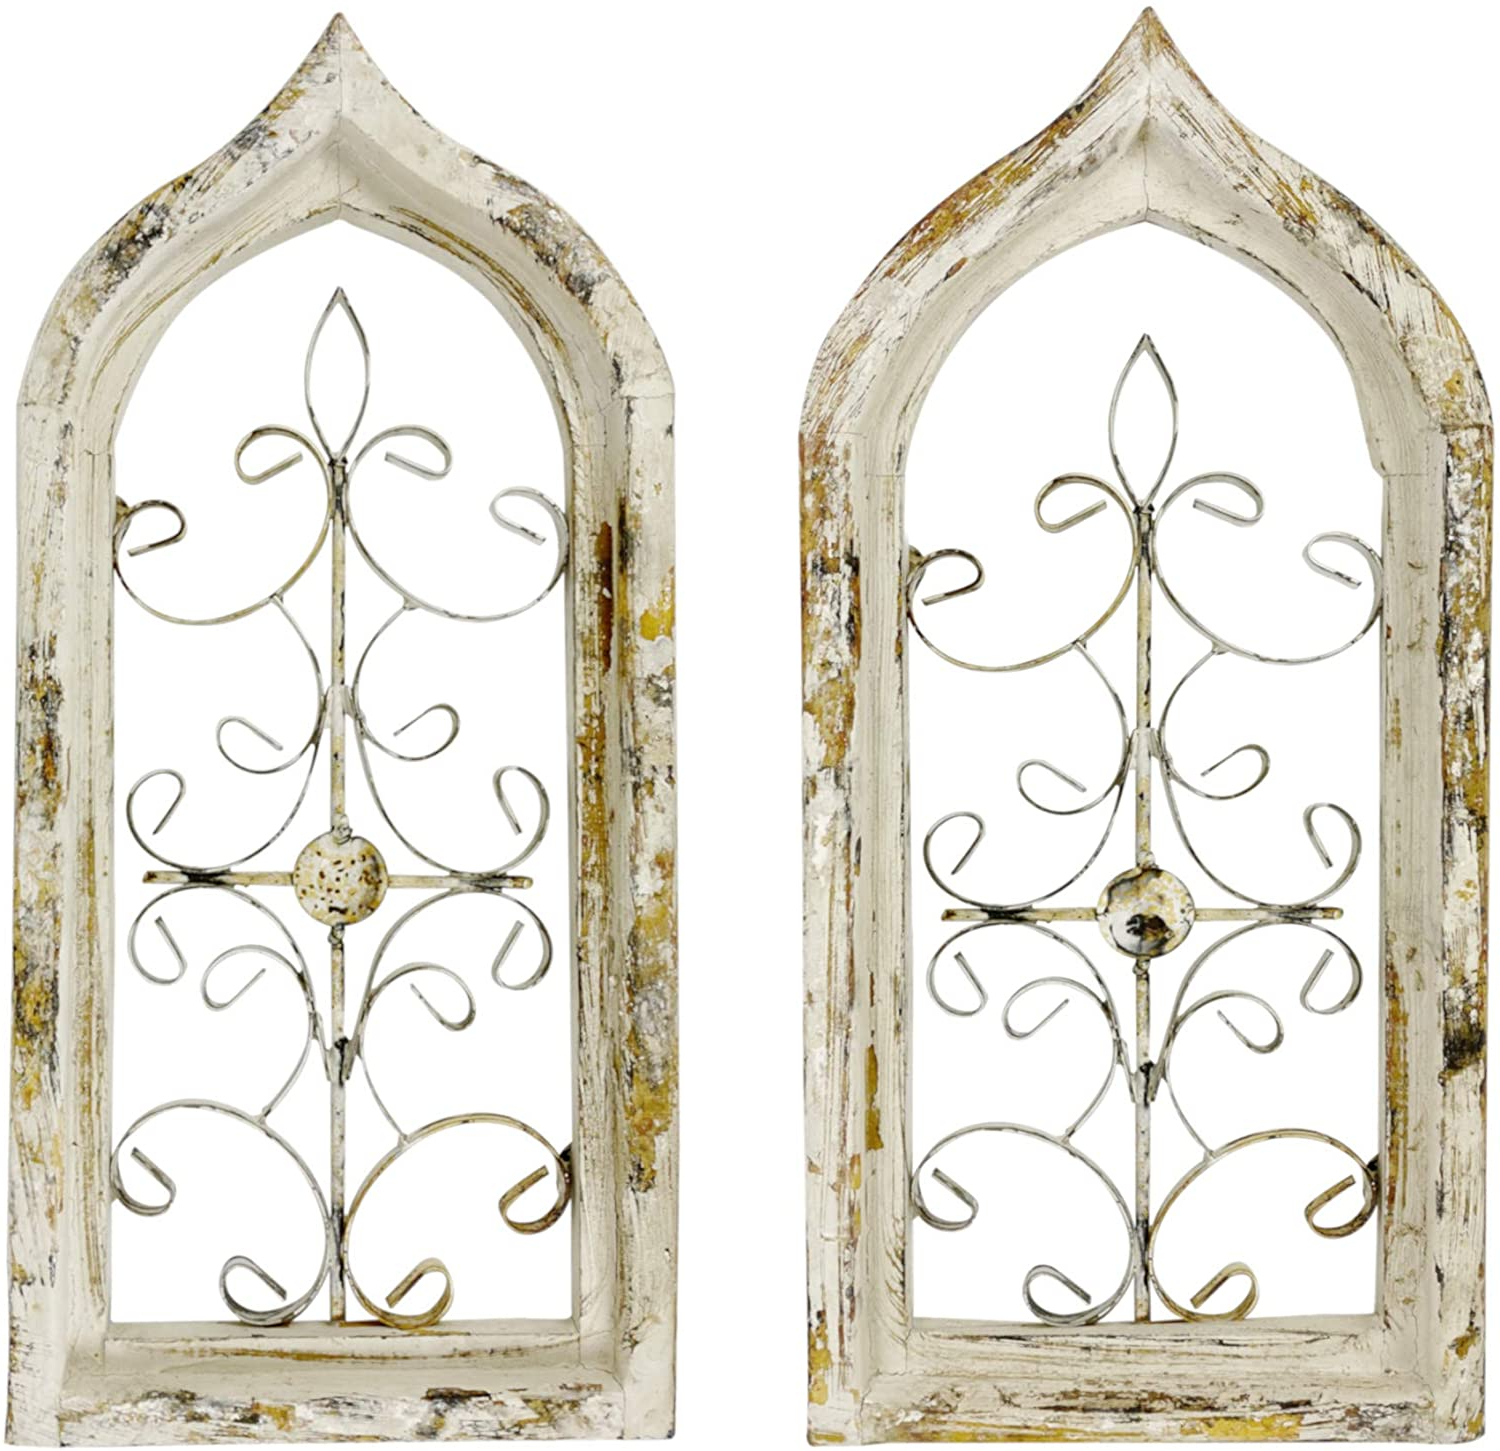 Antique Iron Alloy Wall Décor For Favorite Ak Energy Arched Wrought Black Iron Wall Art Sculpture (View 13 of 20)